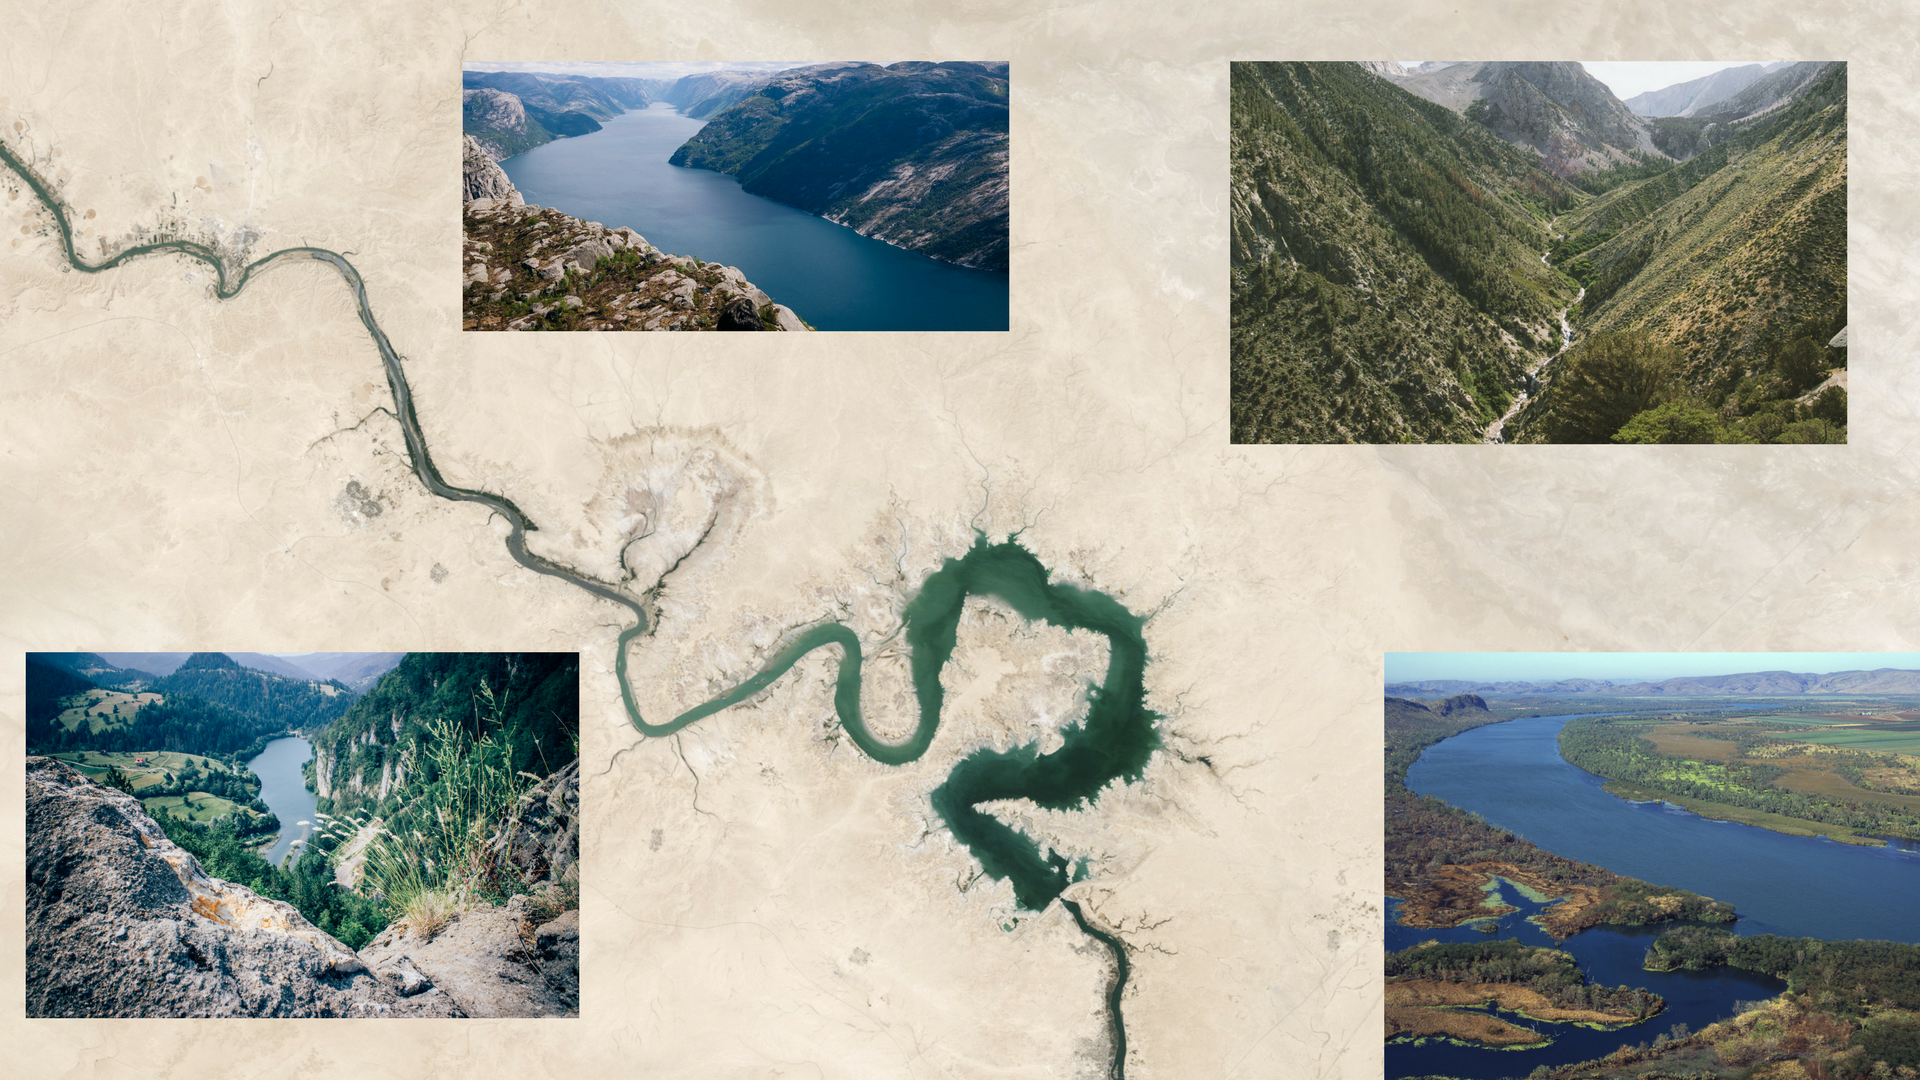 Watershed depicted by remote sensing in the center and as seen in real from side images